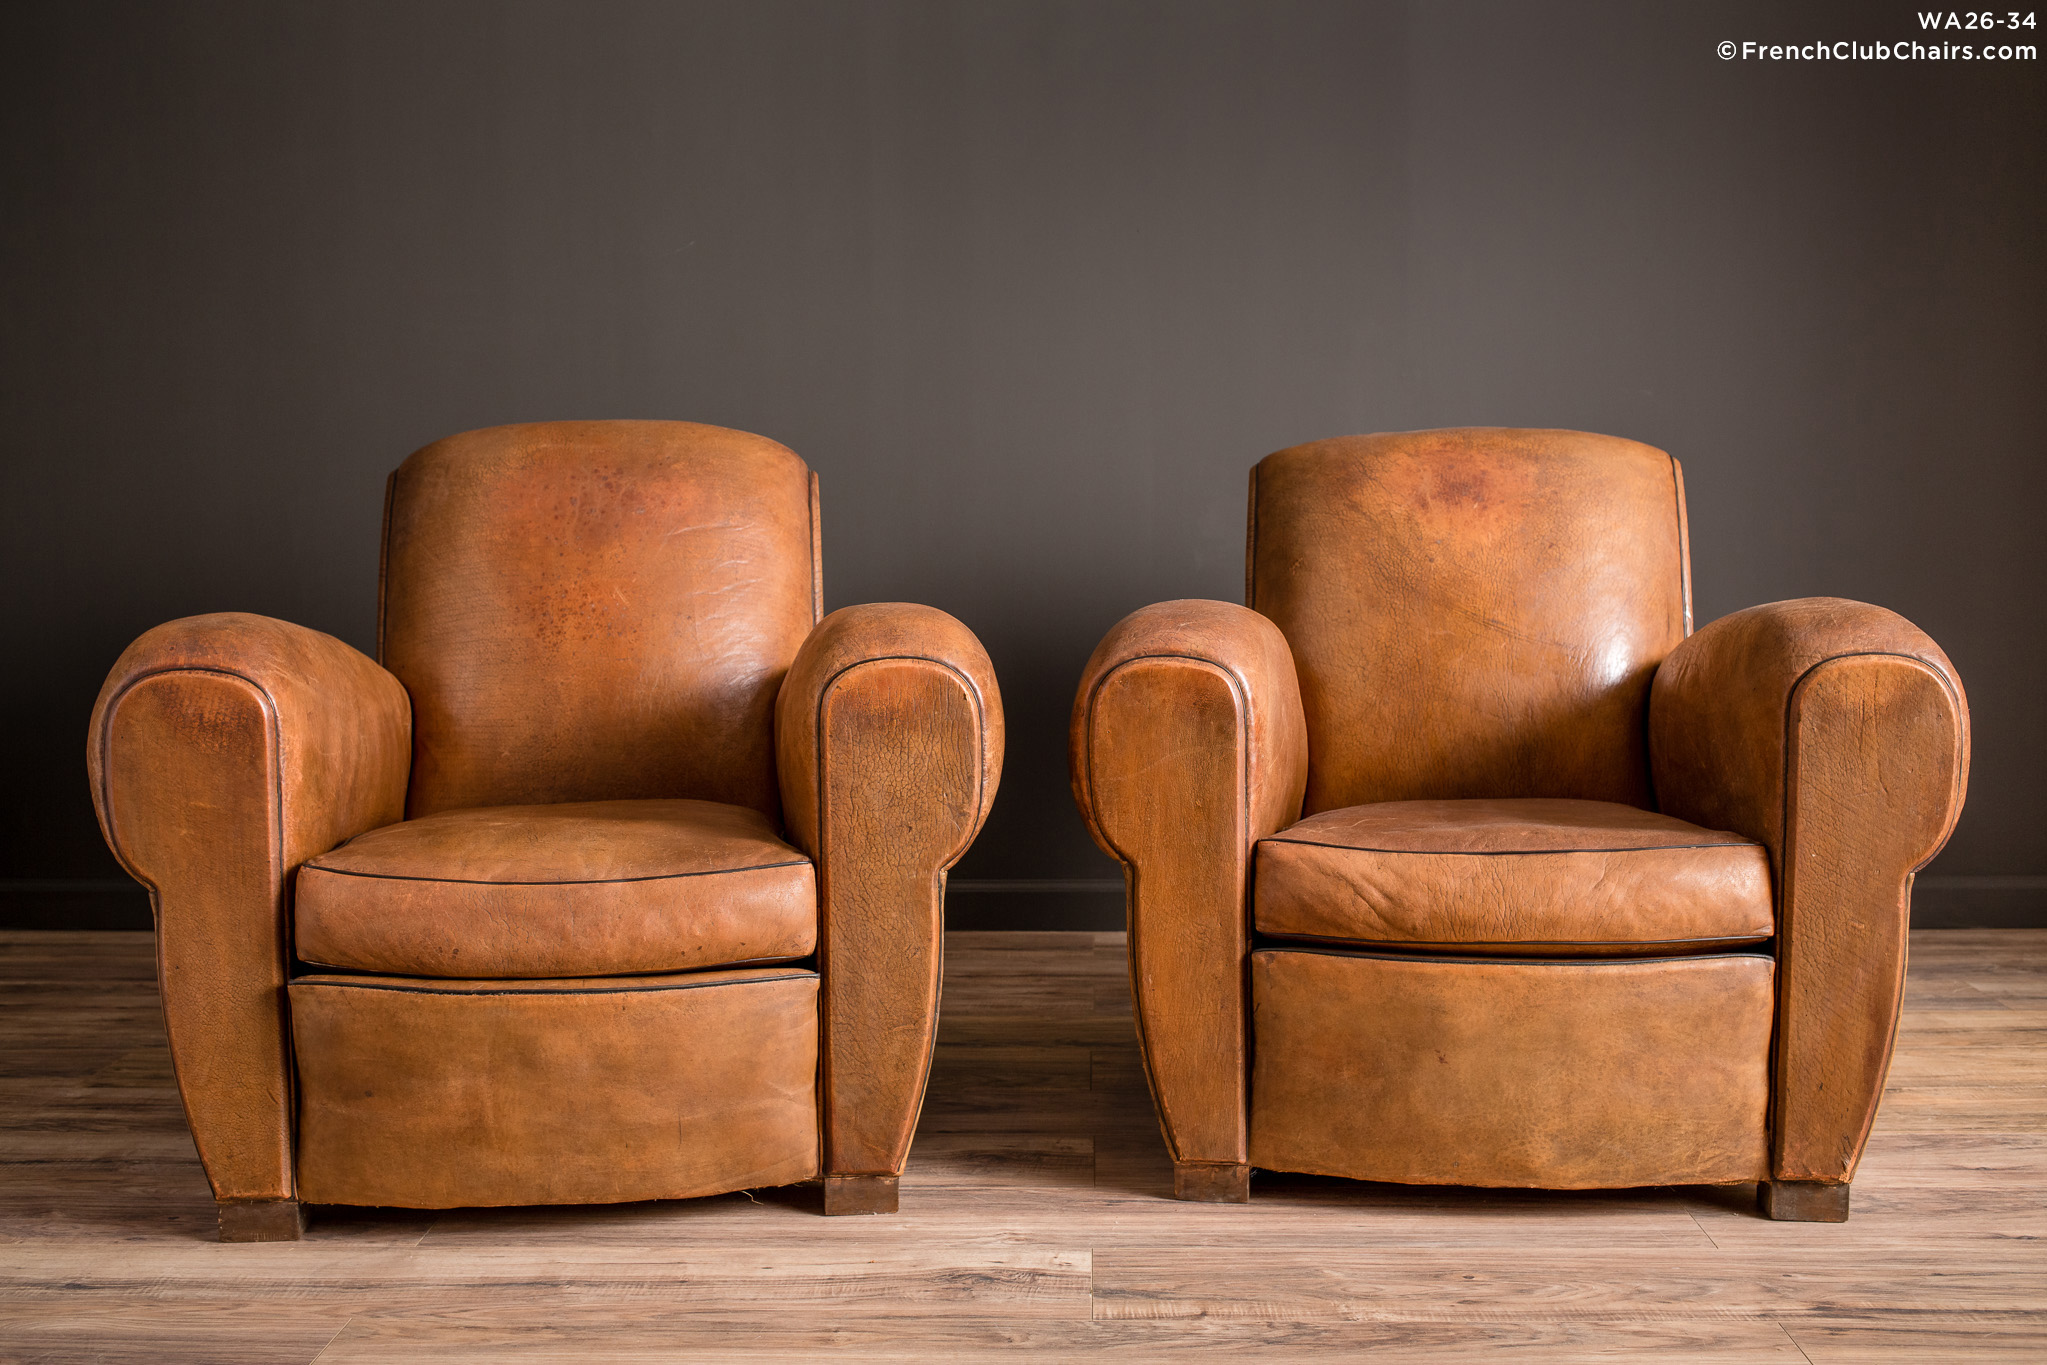 WA_26-34_Degaulle_Giant_Lounge_Pair_R_1TQ-v01-williams-antiks-leather-french-club-chair-wa_fcccom